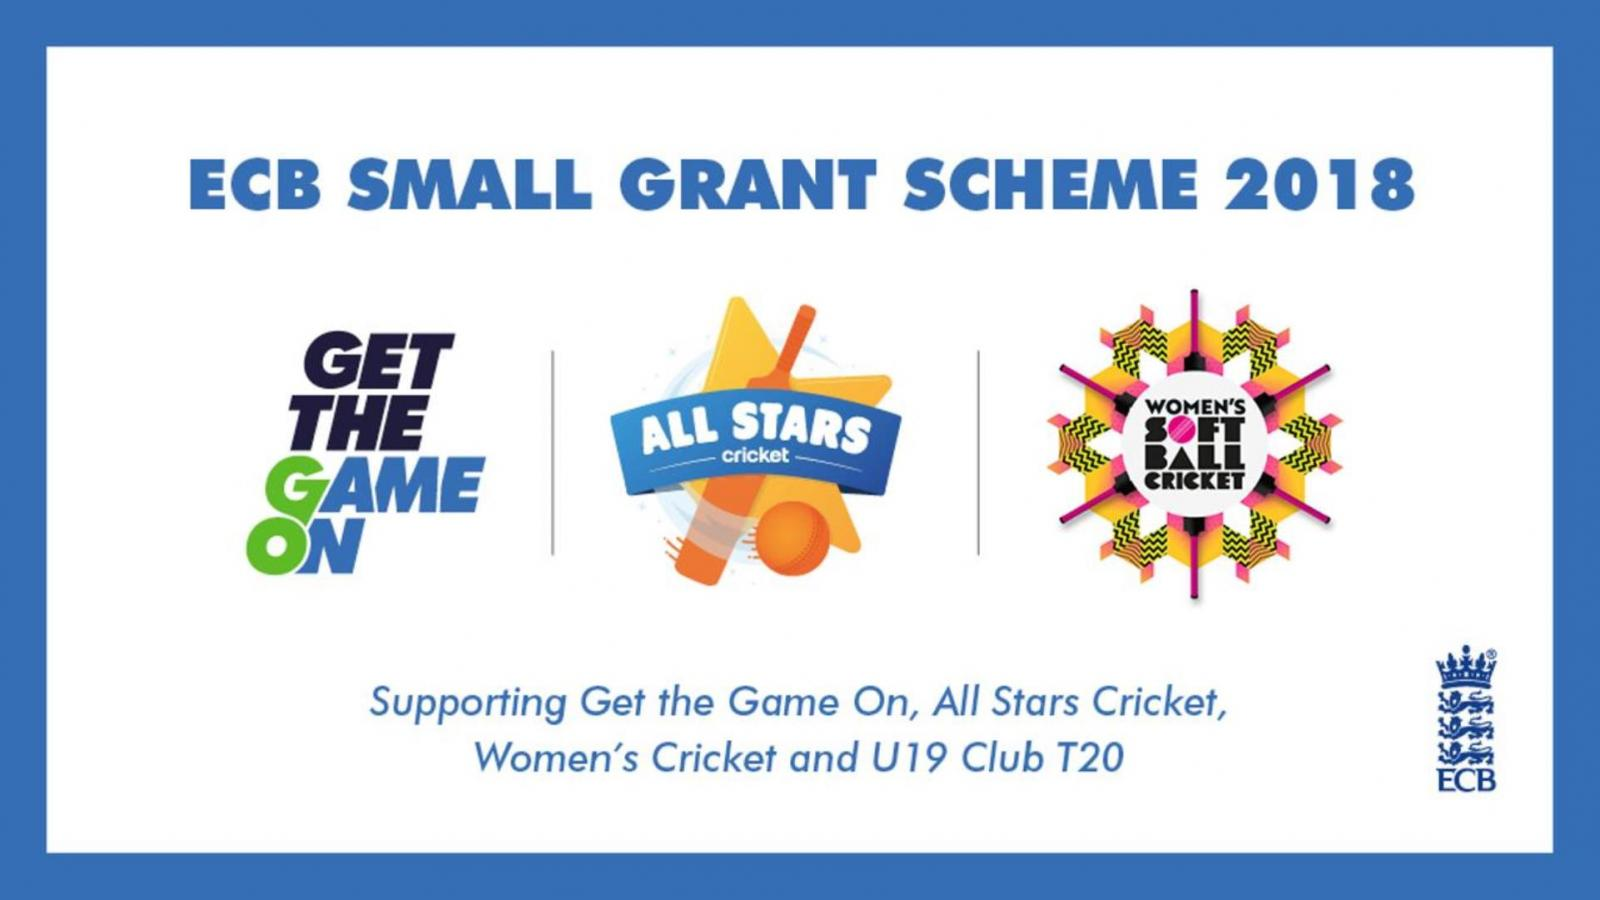 Devon clubs can apply for up to £4,000 following the launch of the 2018 ECB Small Grant Scheme.